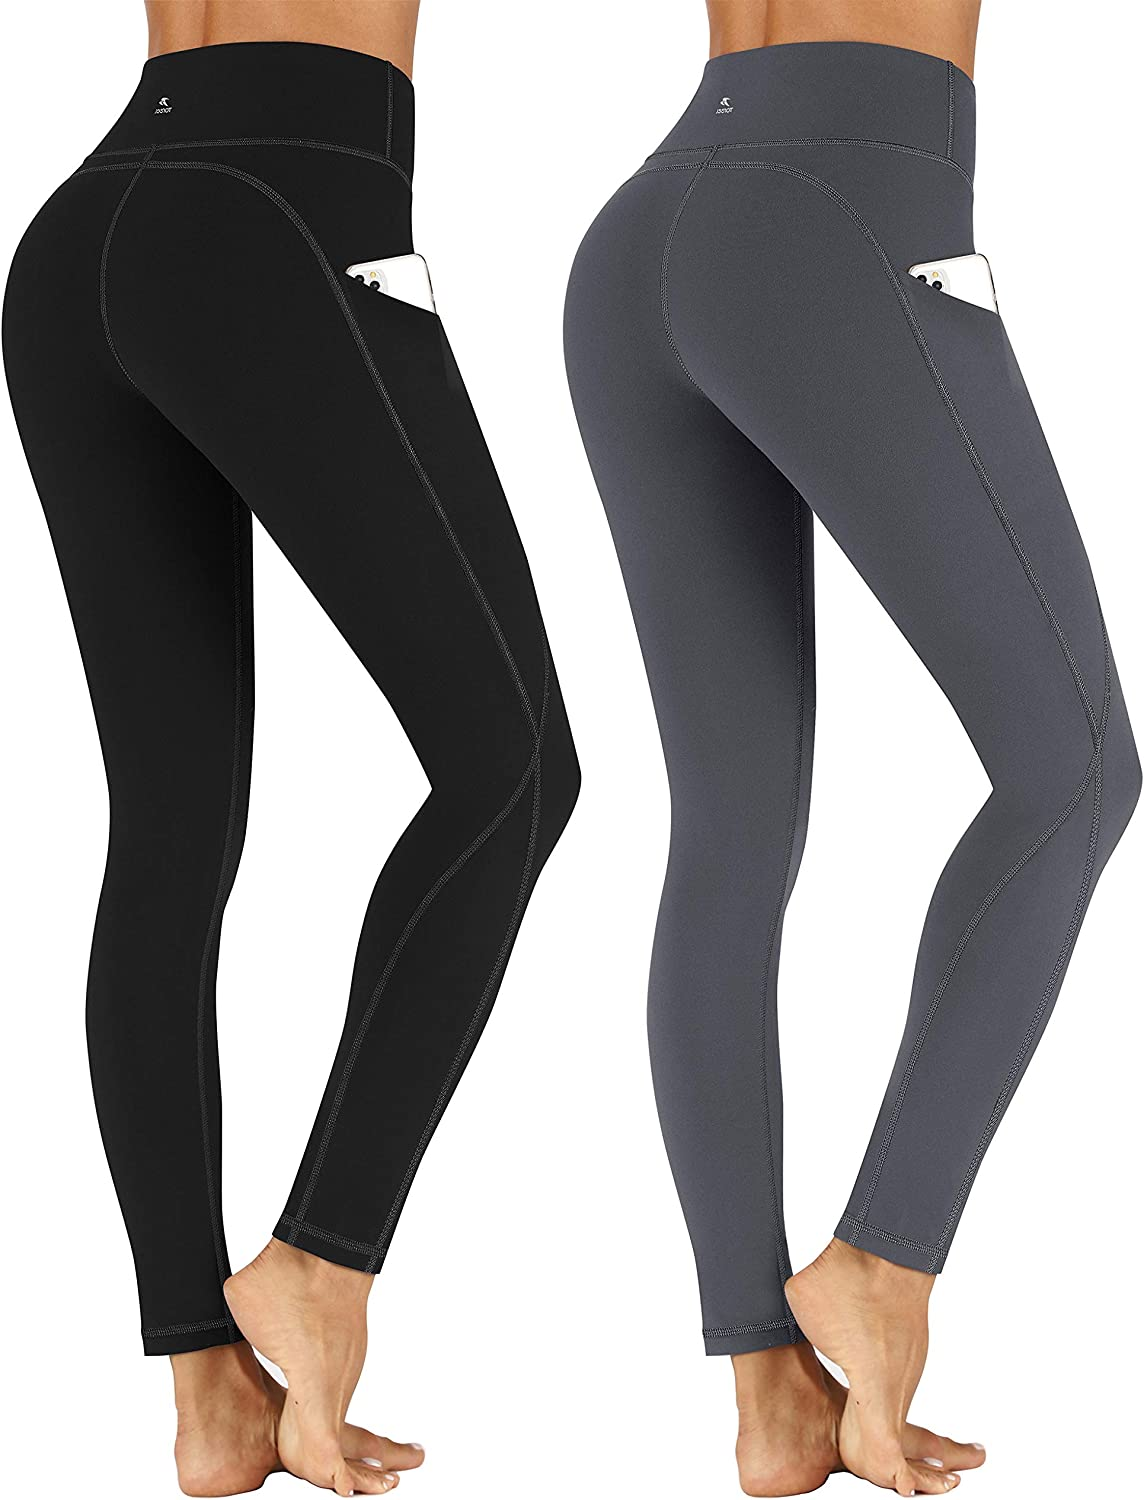 Superlatite TOREEL High Waisted Leggings Pack Yoga Pants Wo with Pockets for cheap